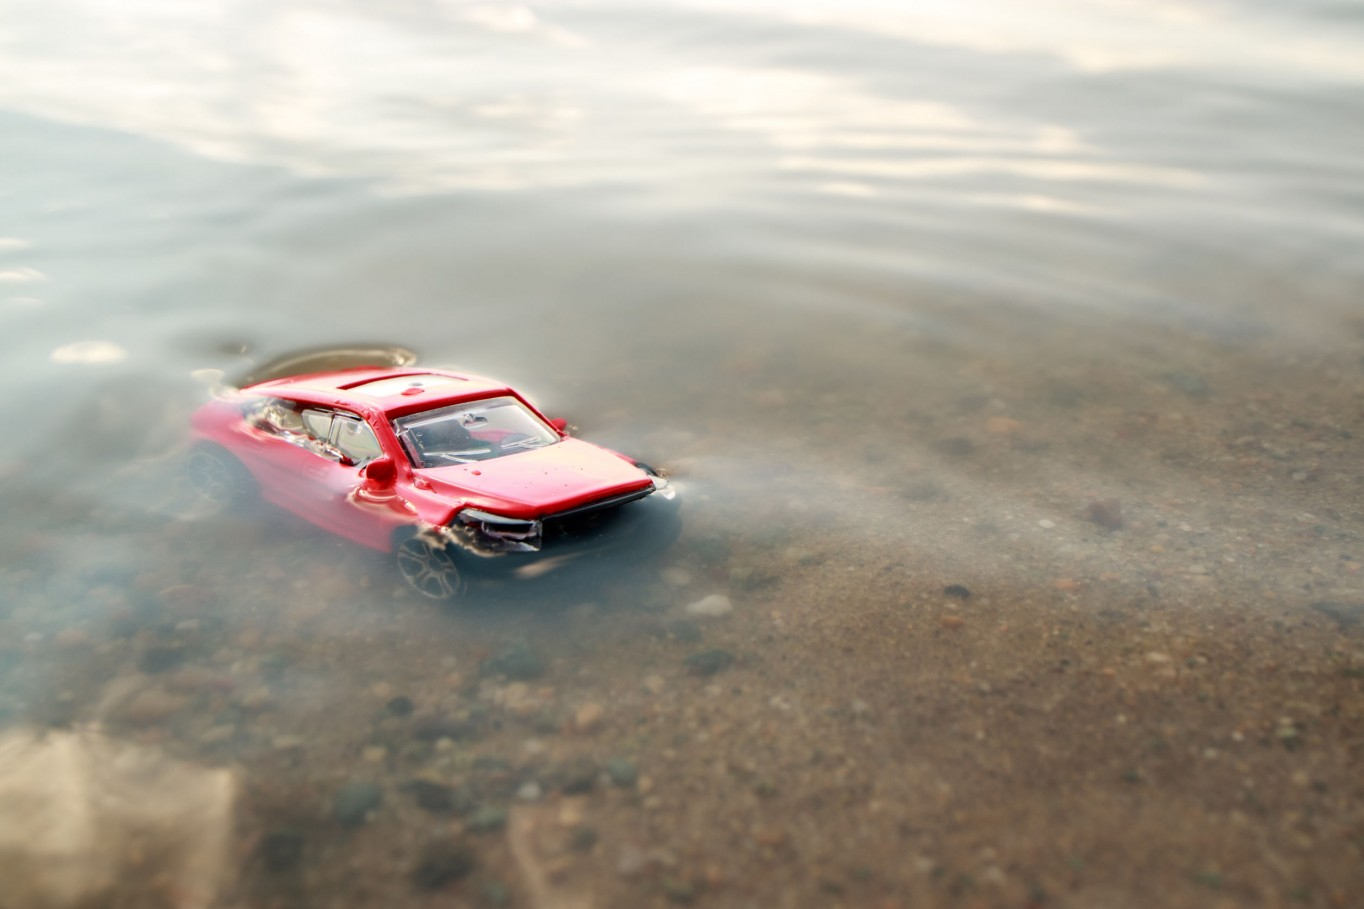 red toy car submerged in the water, drowned in the pond facing us, the accident in the summer on the beach